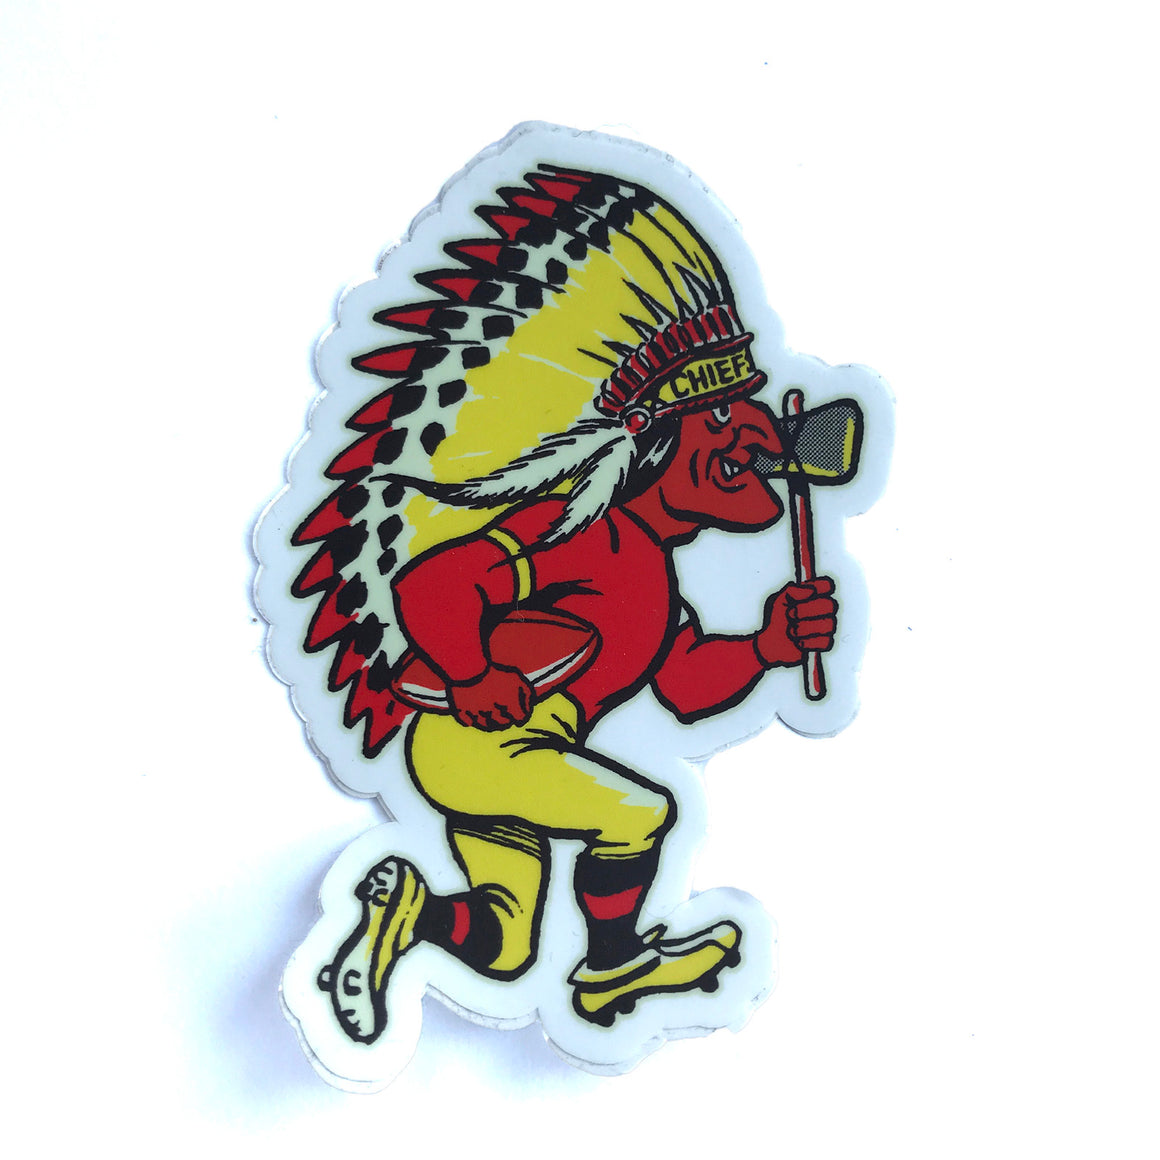 BELLBOY | AFL CHIEF MASCOT DECAL